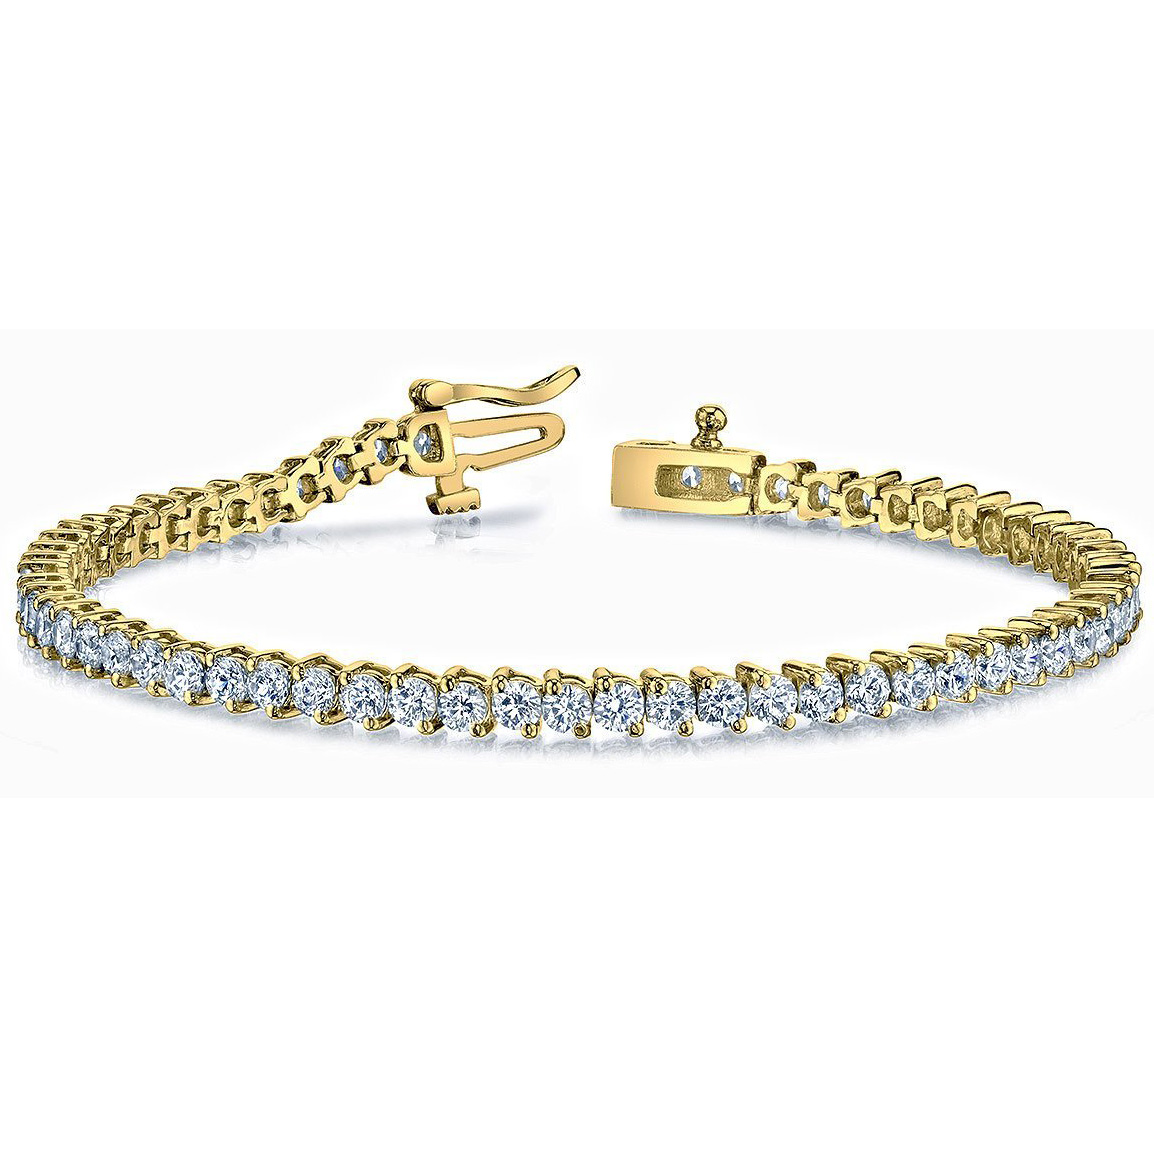 Bracelet diamants 3.00 carat en or 14K ou 18K